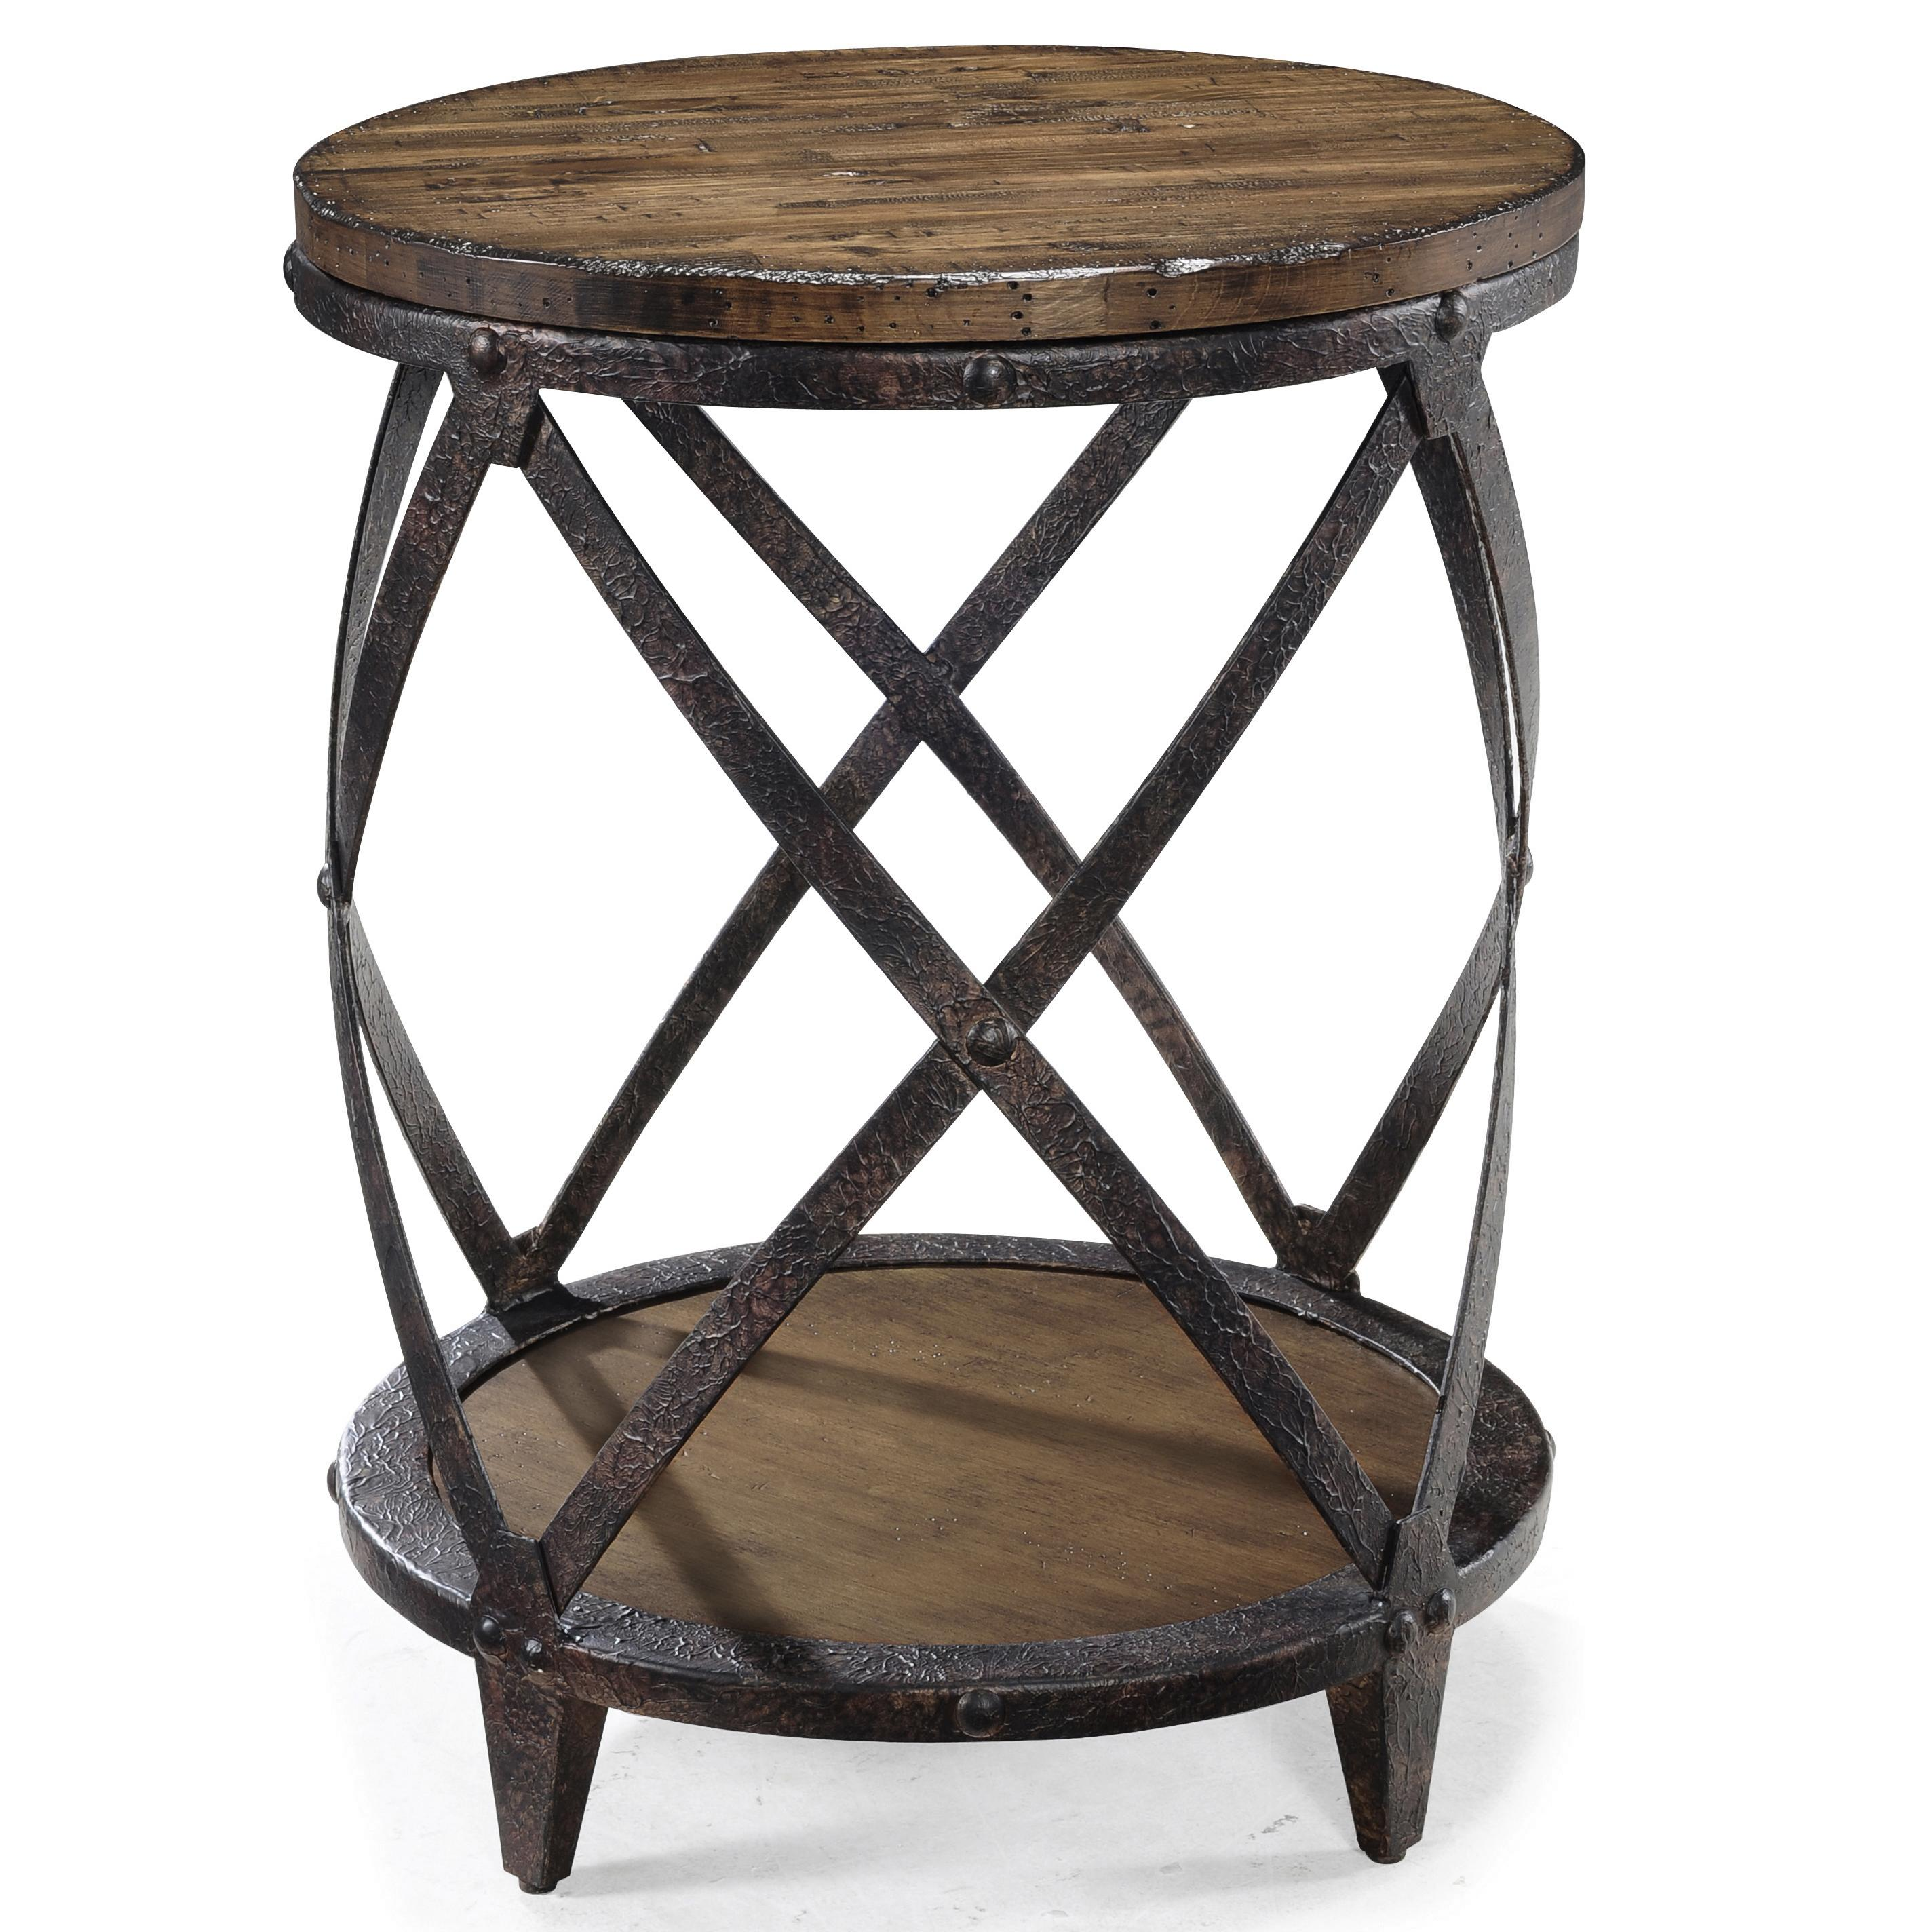 small end table plans the outrageous beautiful wood round and metal side with storage tables designs cat litter house long thin coffee half circle chairside vintage trunk